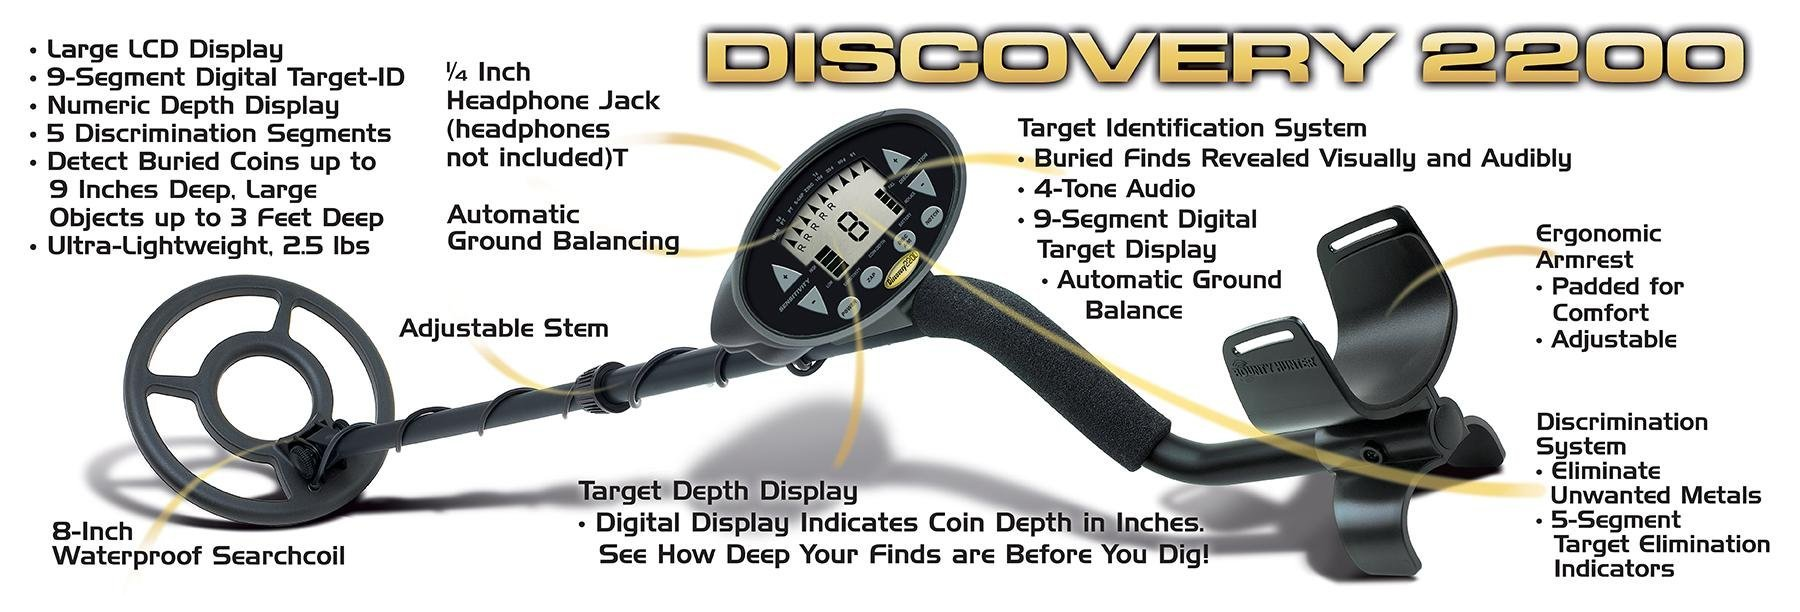 Discovery 2200 Bounty Hunter Metal Detector